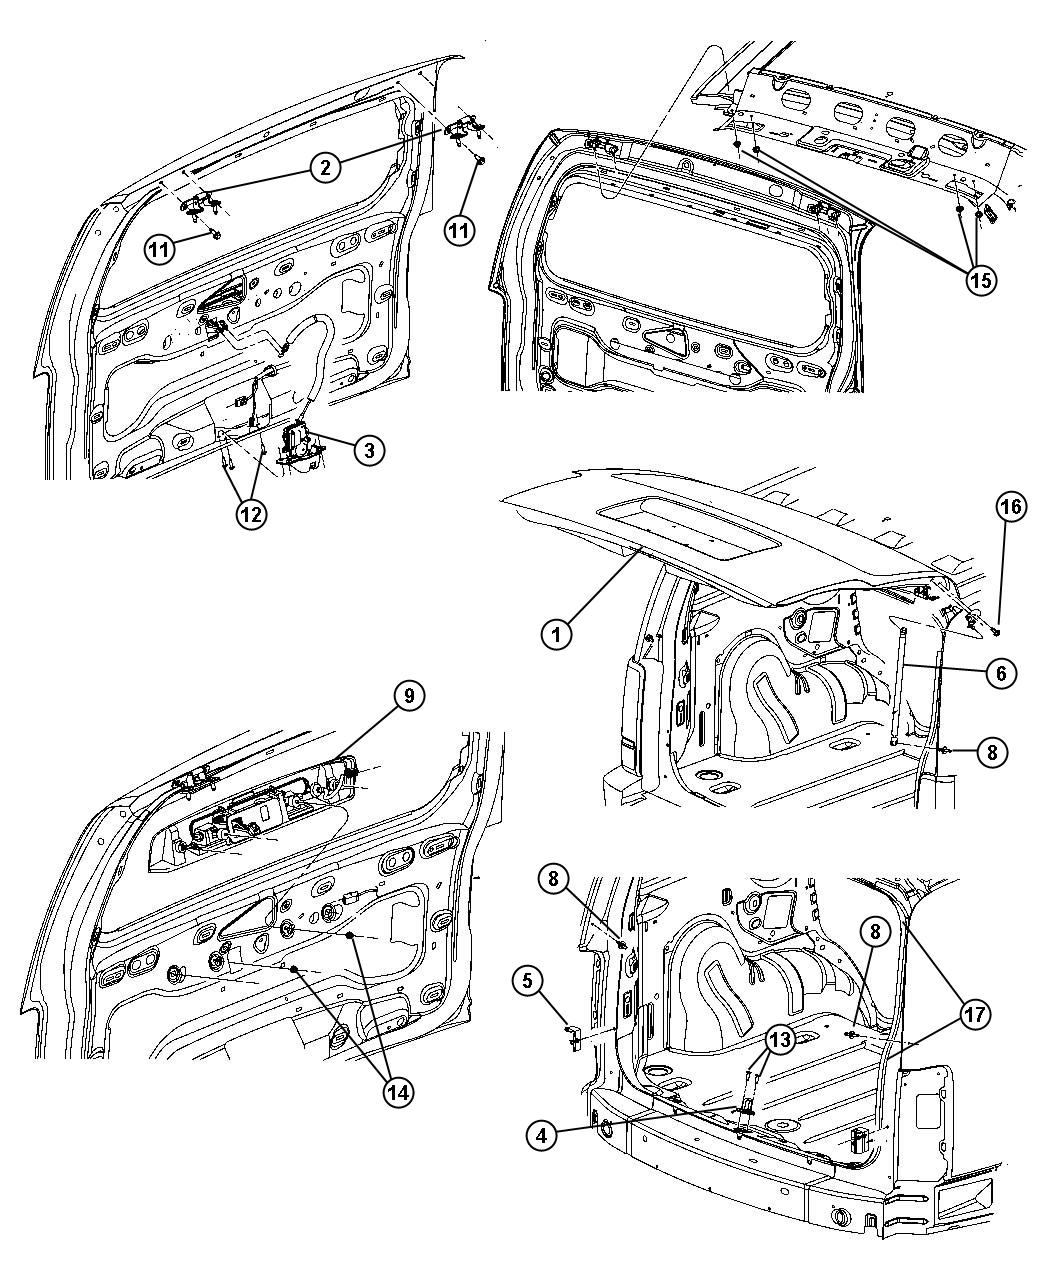 Jeep Jk Front Bumper Parts Diagram. Jeep. Auto Wiring Diagram